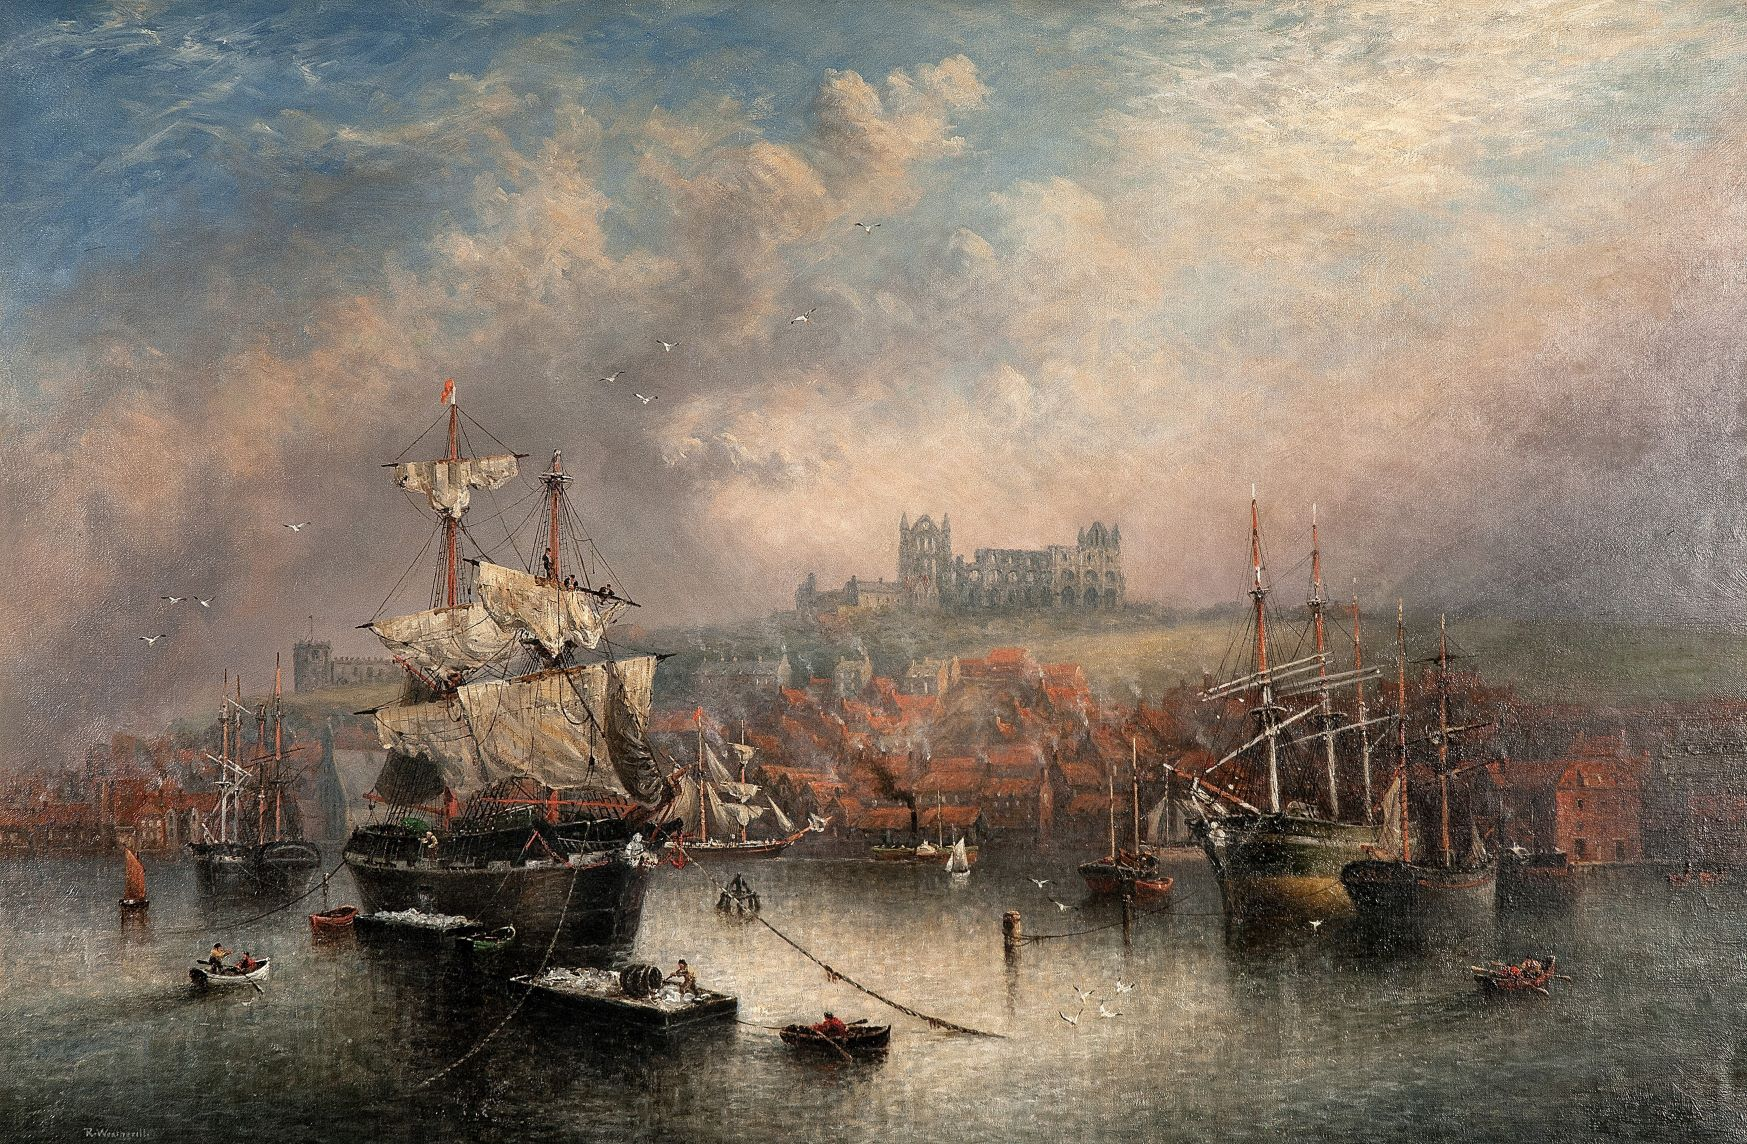 Pannett Art Gallery is Closed - Unloading Cargo by Richard Weatherill (1844 – 1923)